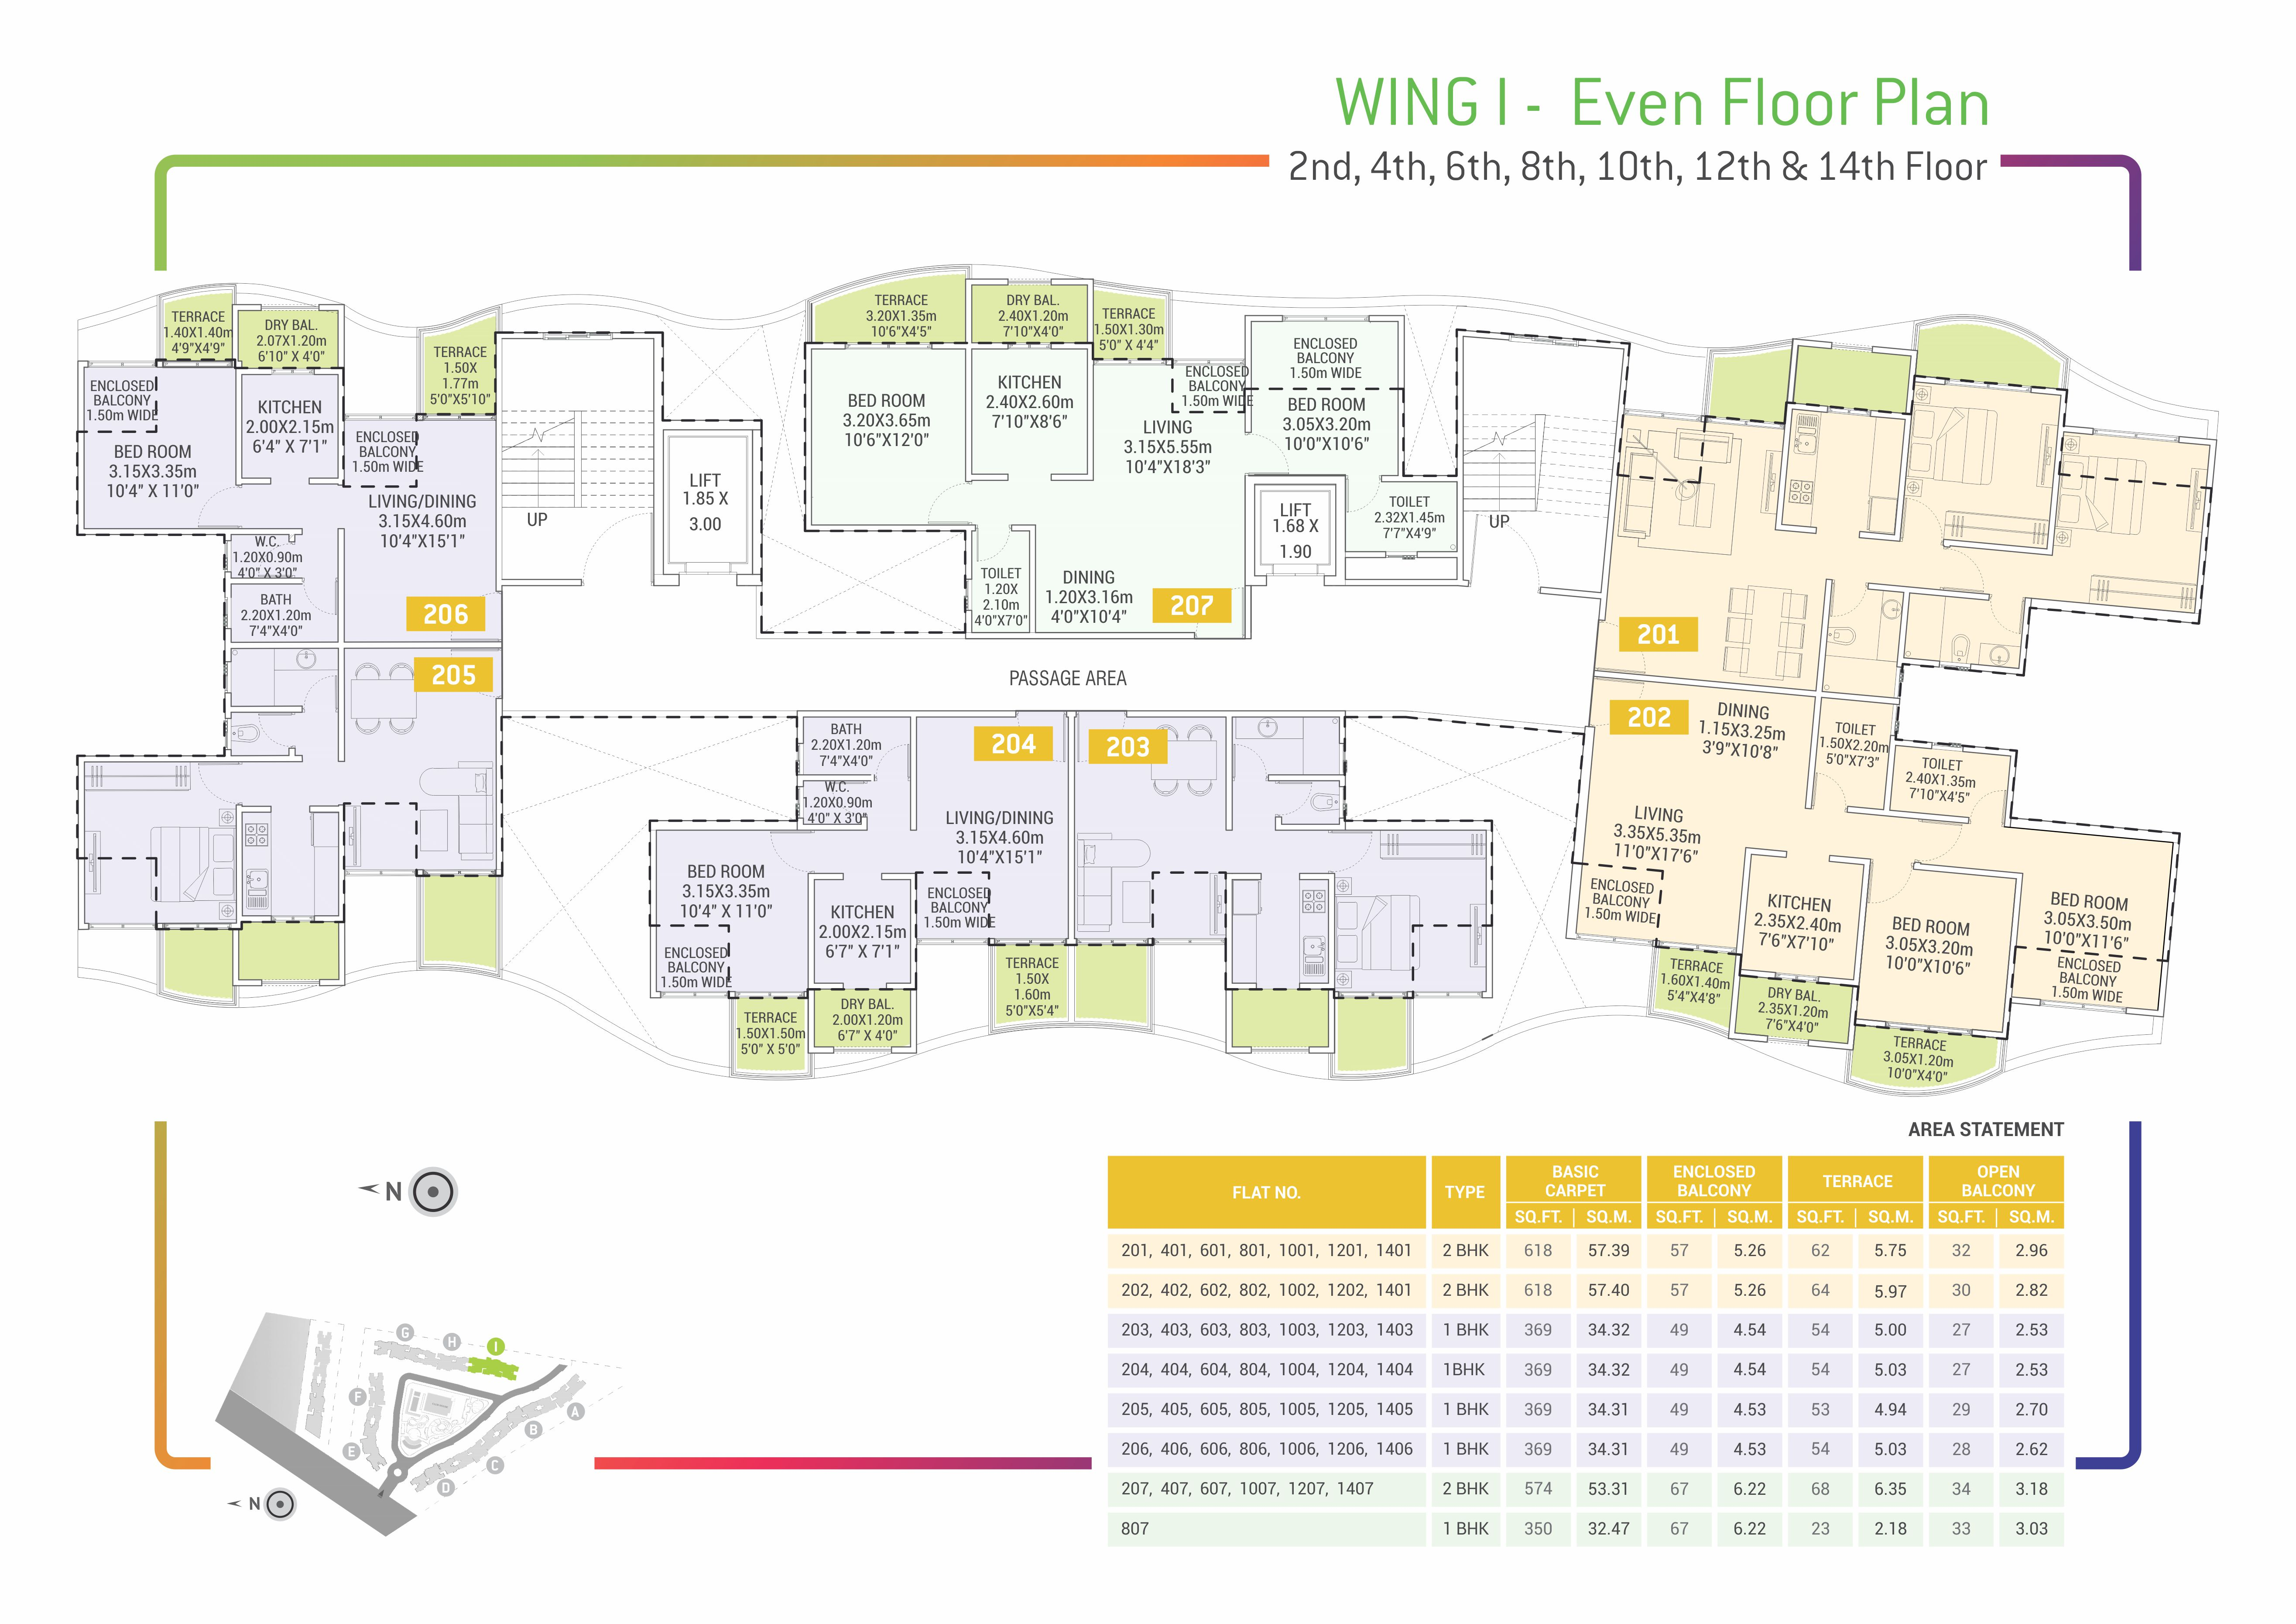 Urban Life Floor Plans - I - Even